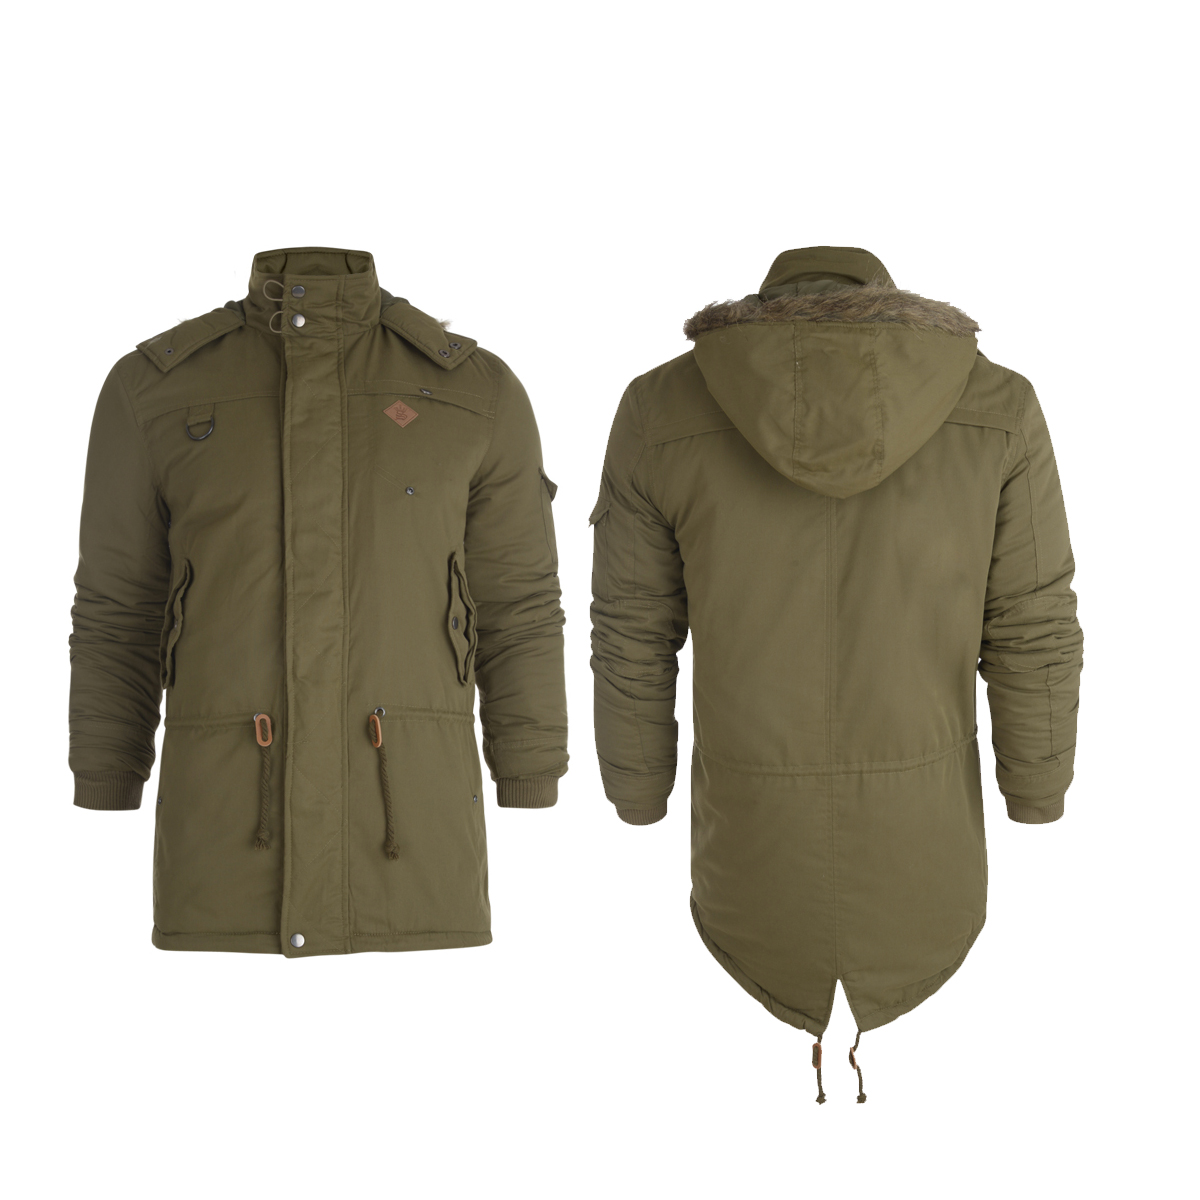 Performance cotton fishtail parka jacket with shell hood. Rothco's Vintage Camo M Fishtail Parka. by Rothco. $ - $ $ 69 $ FREE Shipping on eligible orders. 5 out of 5 stars 2. Alpha Industries Men's N-3B Slim-Fit Parka Coat with Removable Faux .